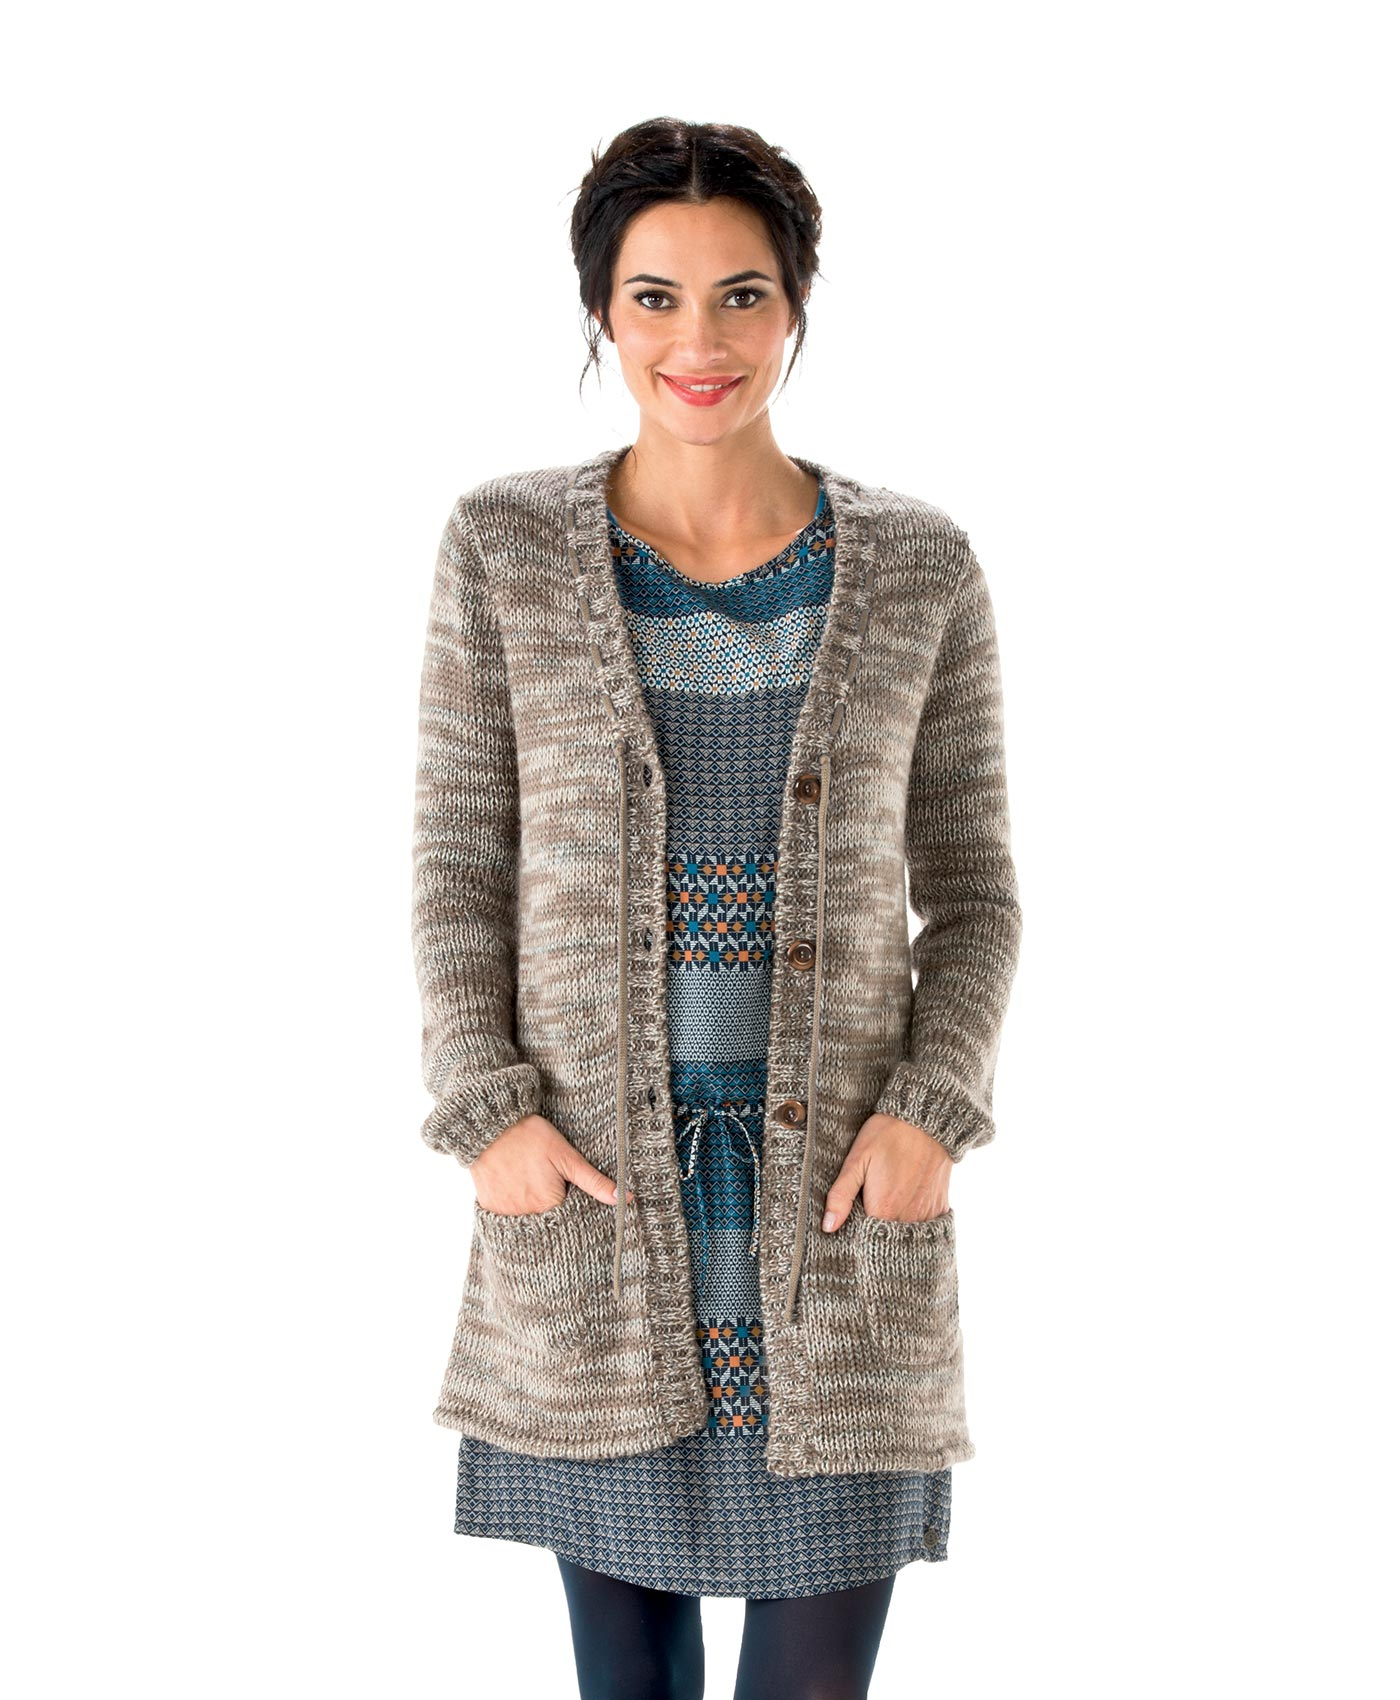 Shop for womens beige cardigan online at Target. Free shipping on purchases over $35 and save 5% every day with your Target REDcard.